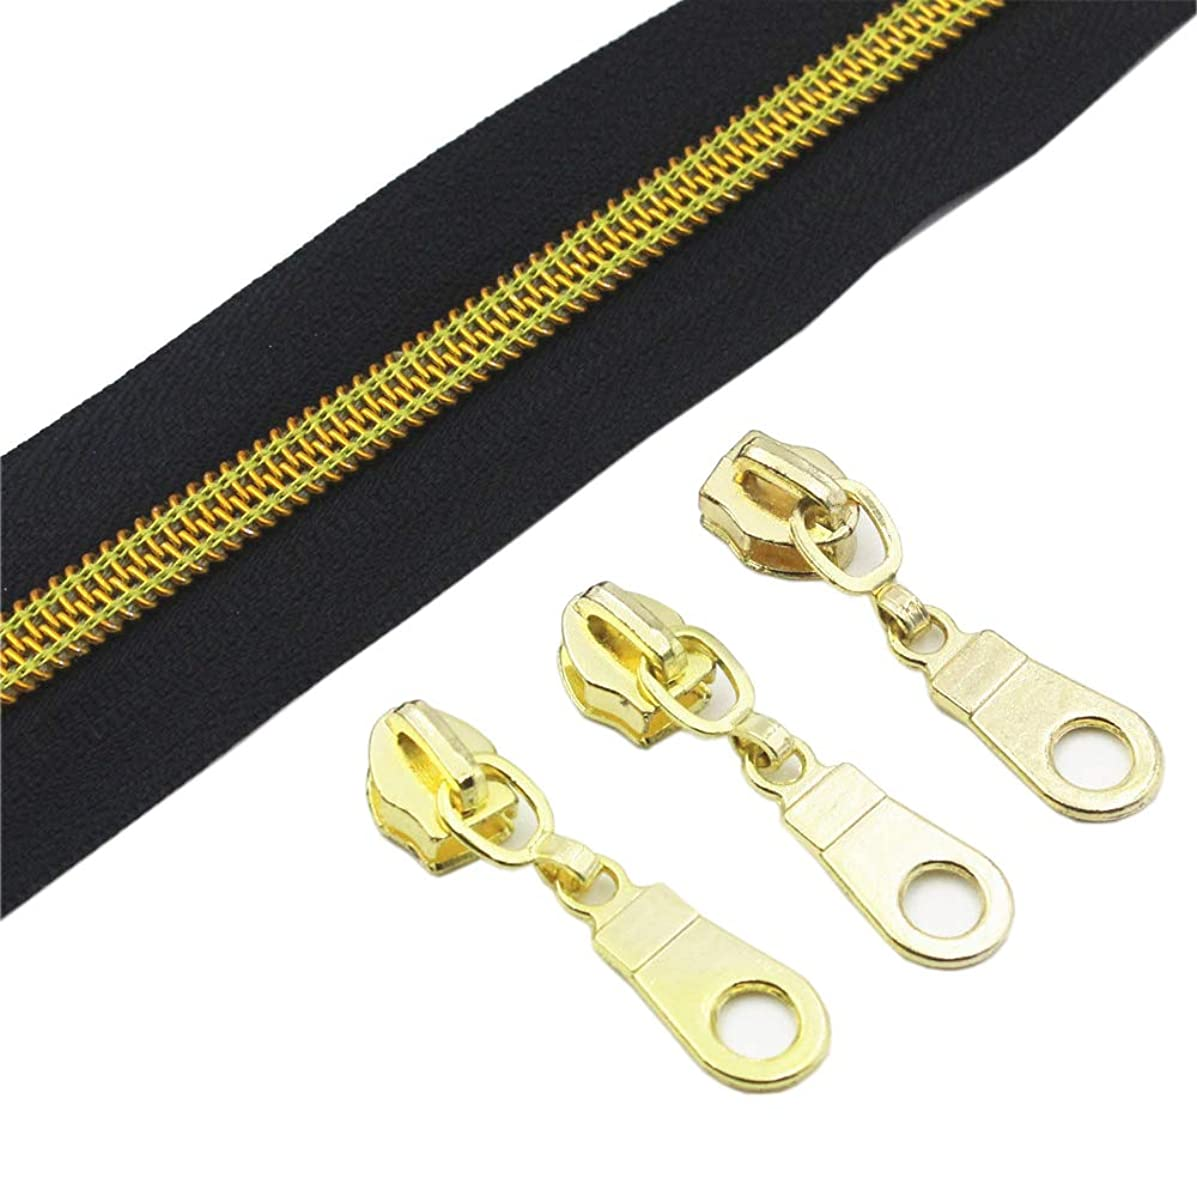 YaHoGa #5 Gold Metallic Nylon Coil Zippers by The Yard Bulk 10 Yards with 25pcs Gold Sliders for DIY Sewing Tailor Craft Bag (Black)